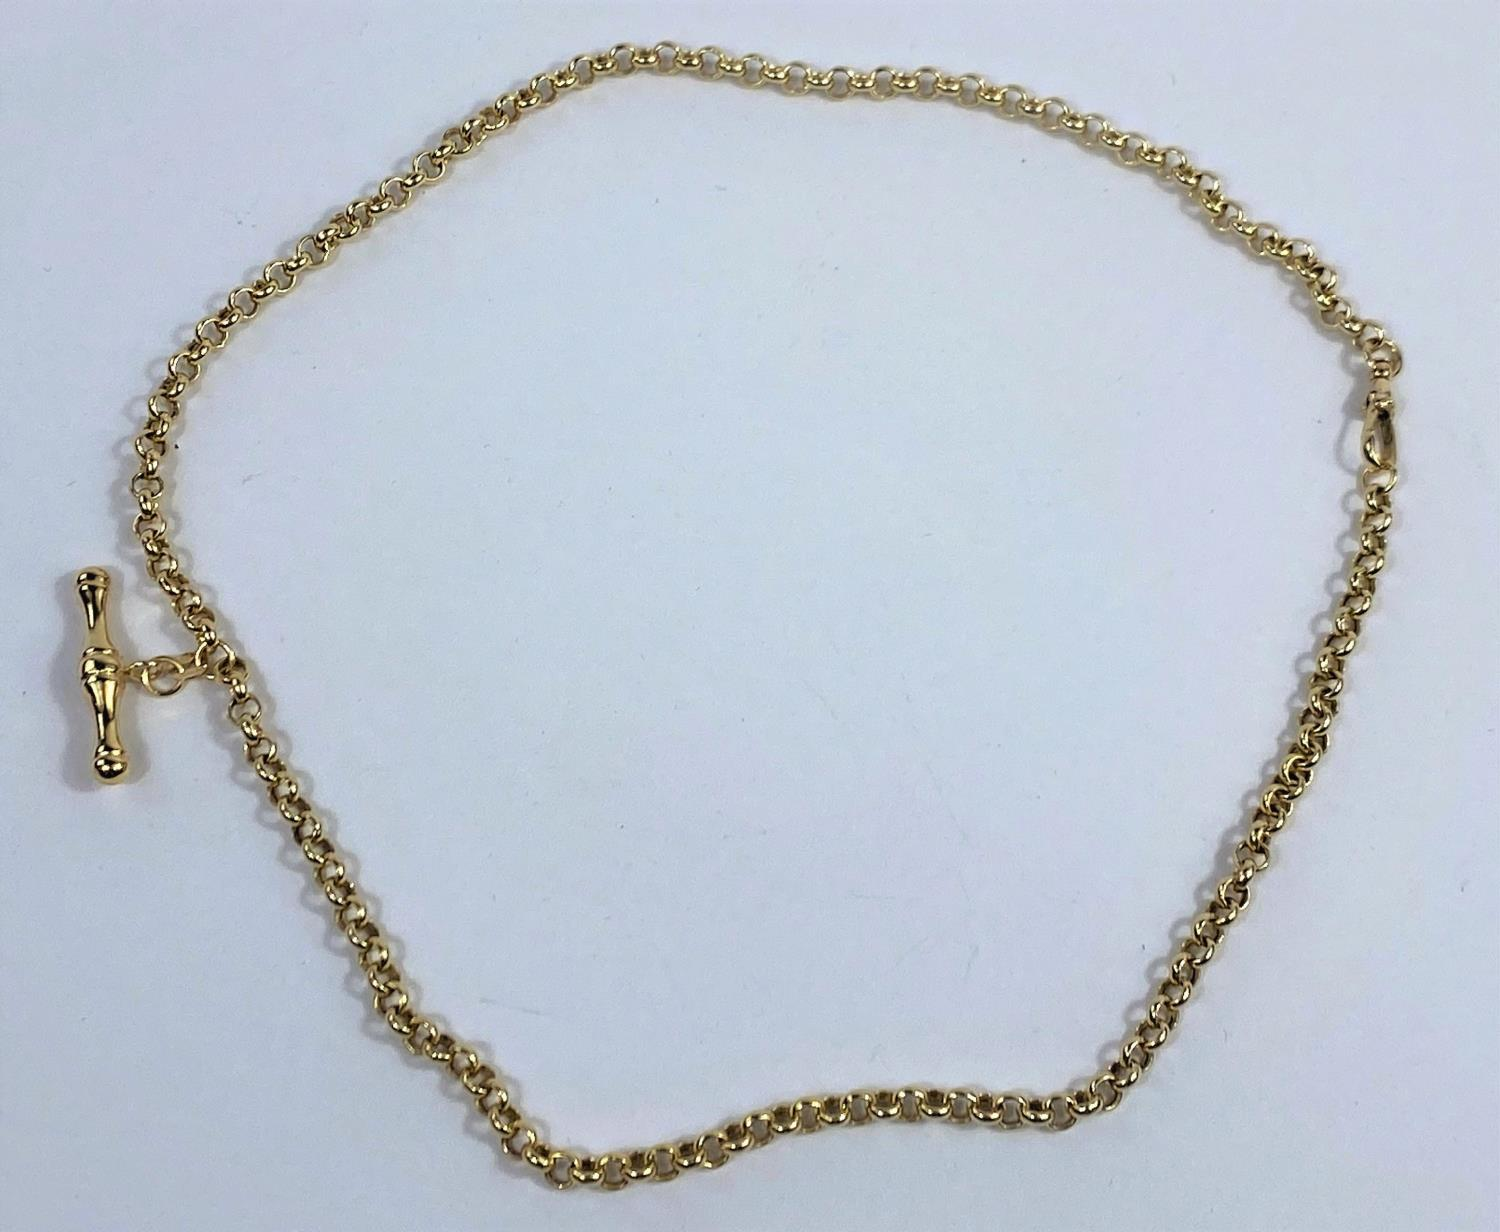 A 9 carat hallmarked gold belcher chain with clip and bar, 6.8 gm - Image 2 of 3